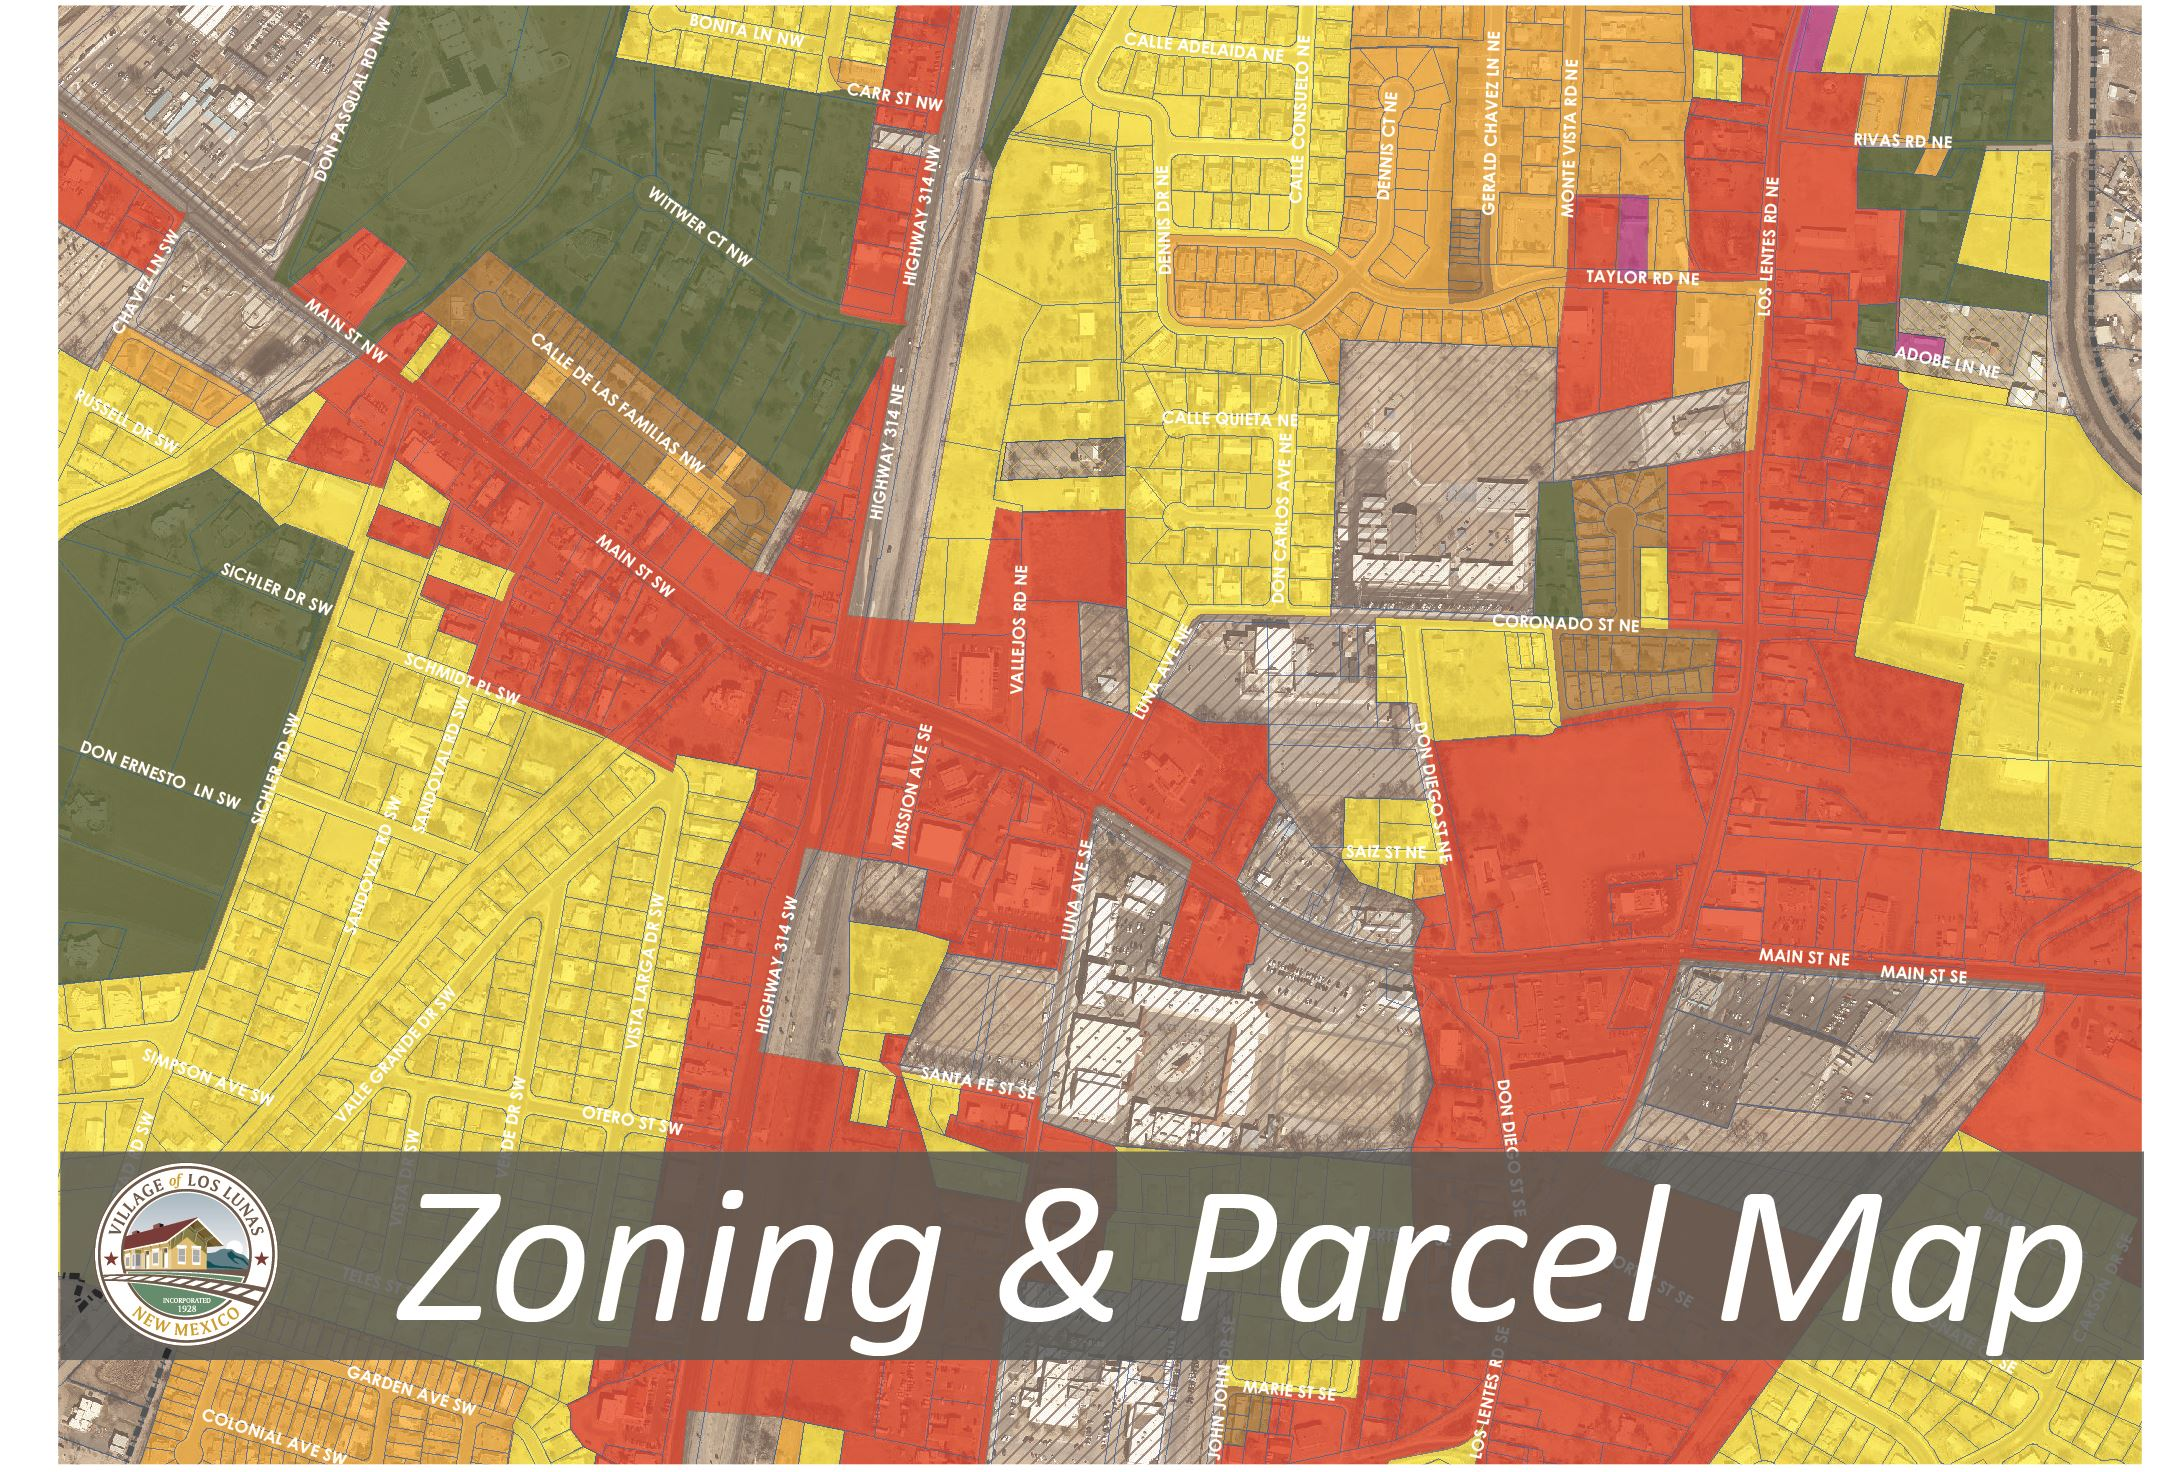 Zoning and Parcel Map Updated